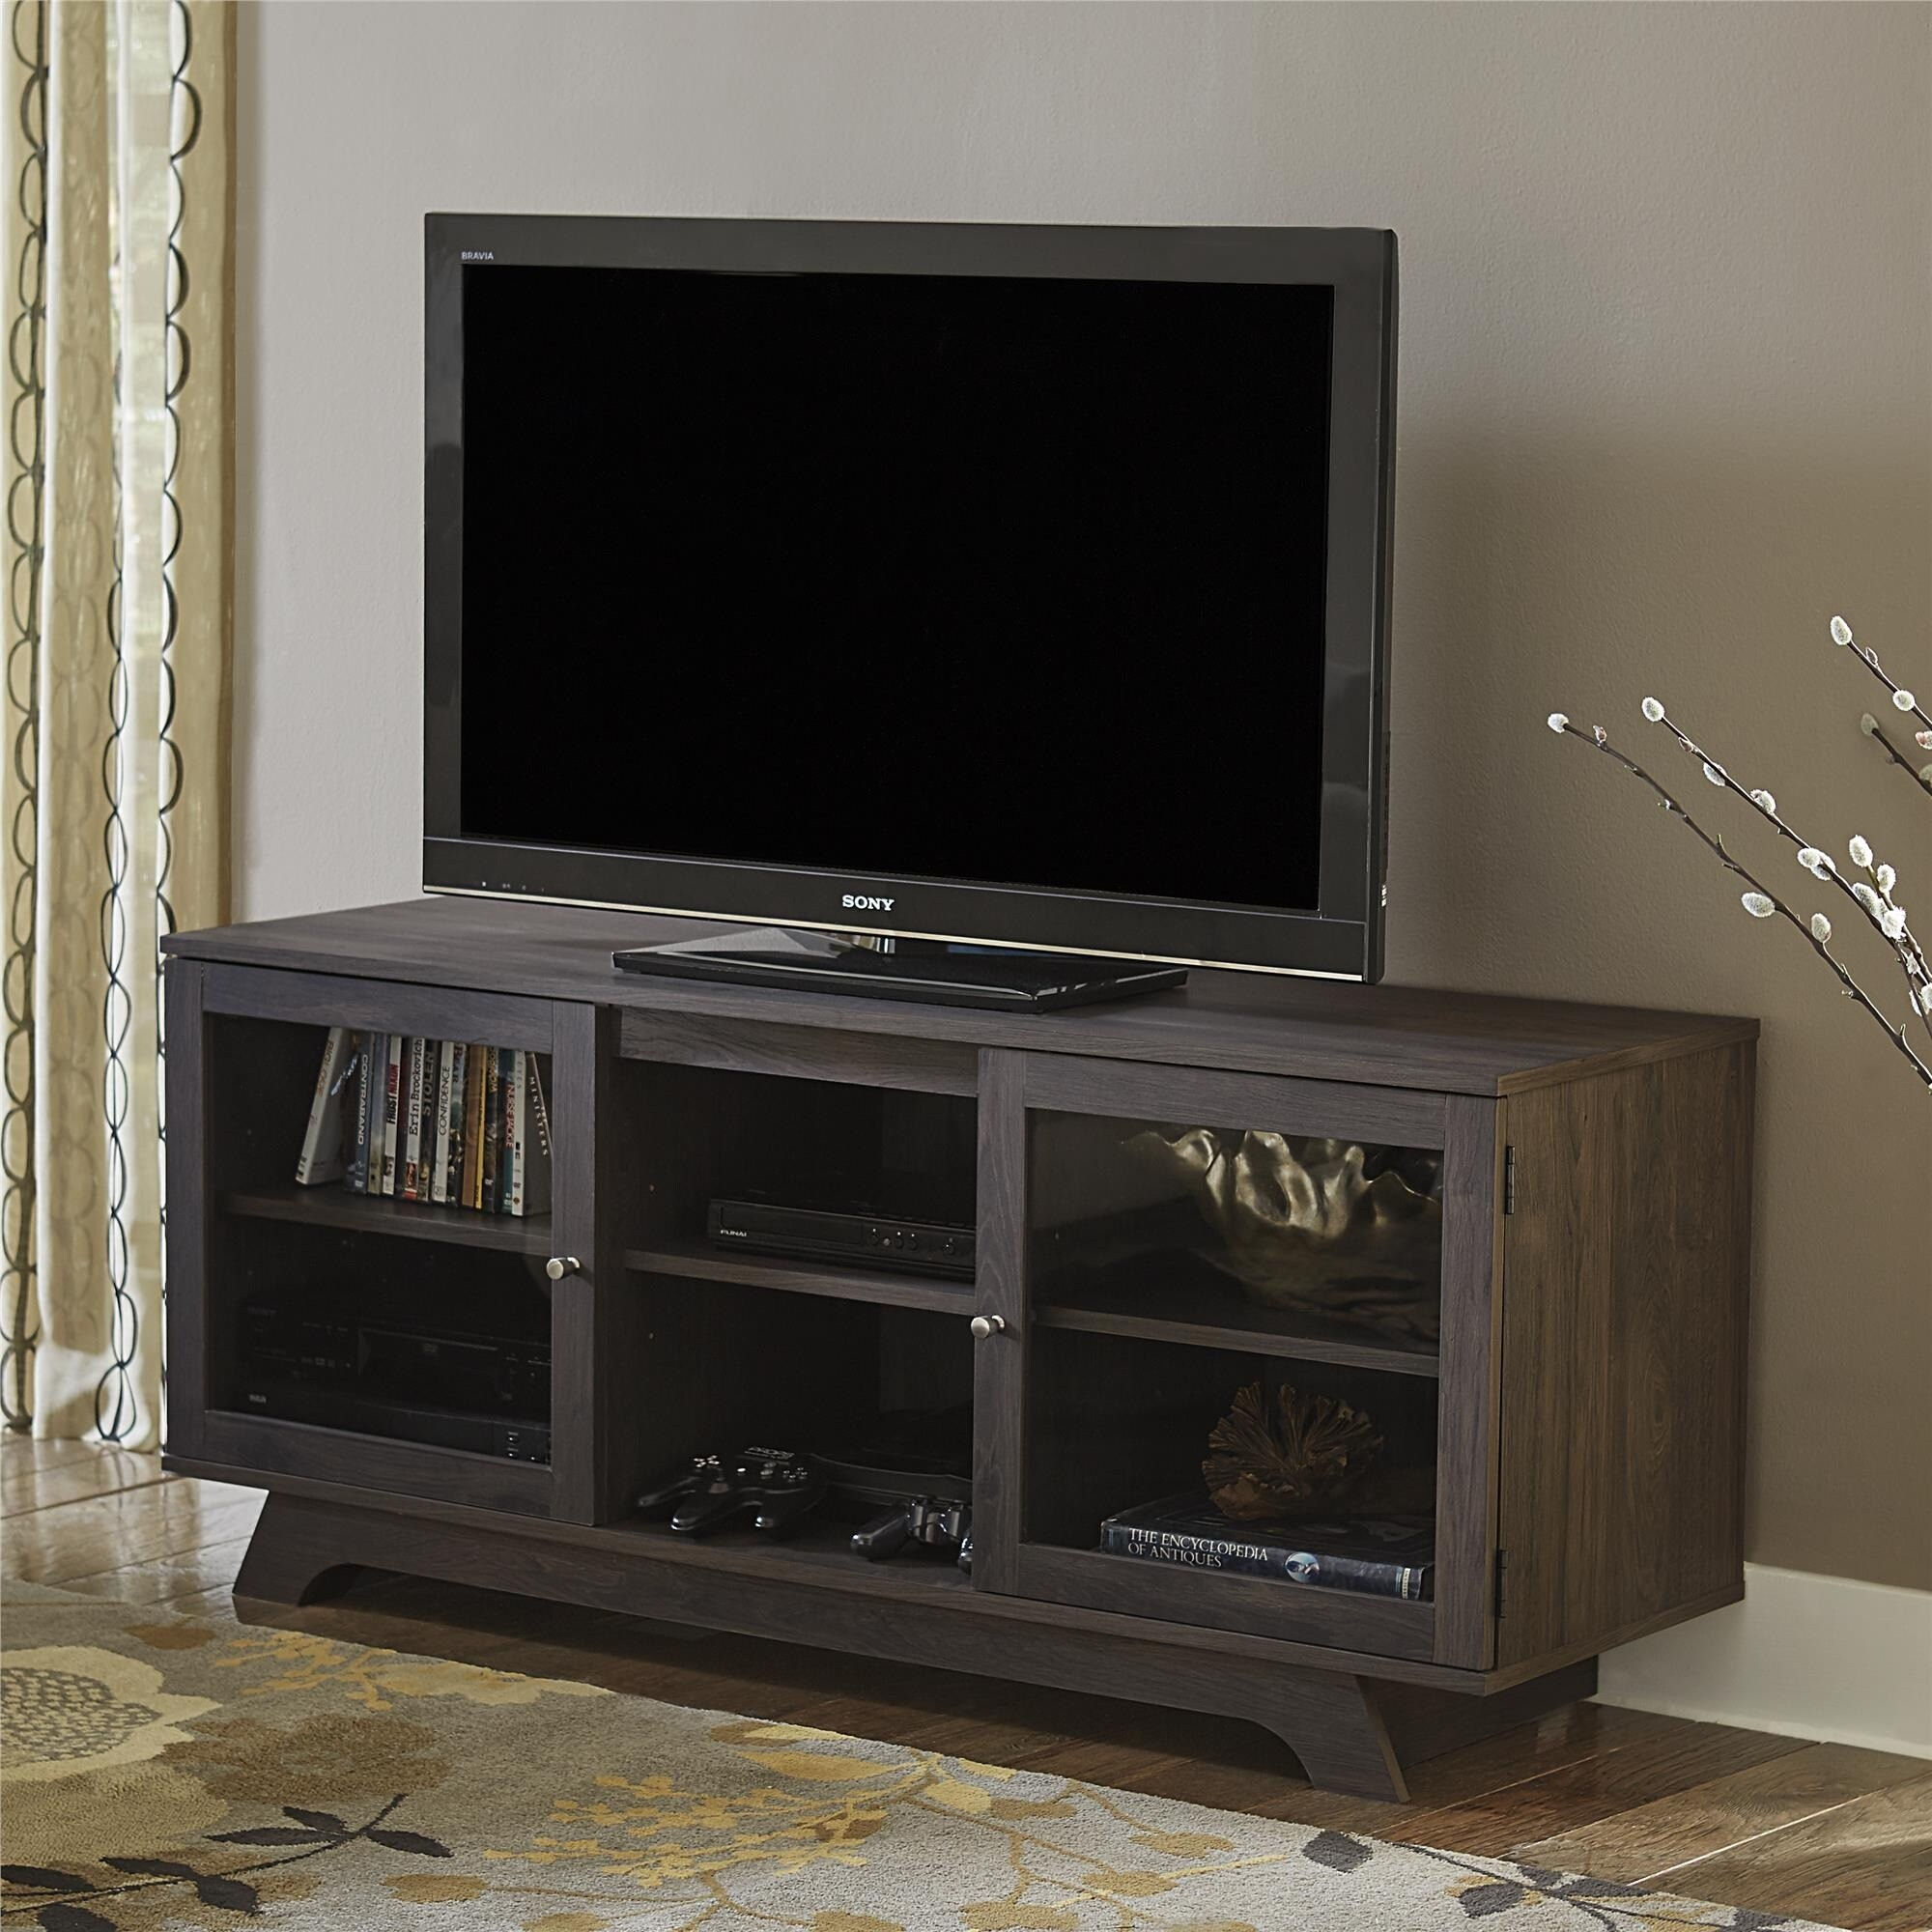 Bon Shop Ameriwood Home Englewood Weathered Oak 55 Inch TV Stand   On Sale    Free Shipping Today   Overstock.com   12039210